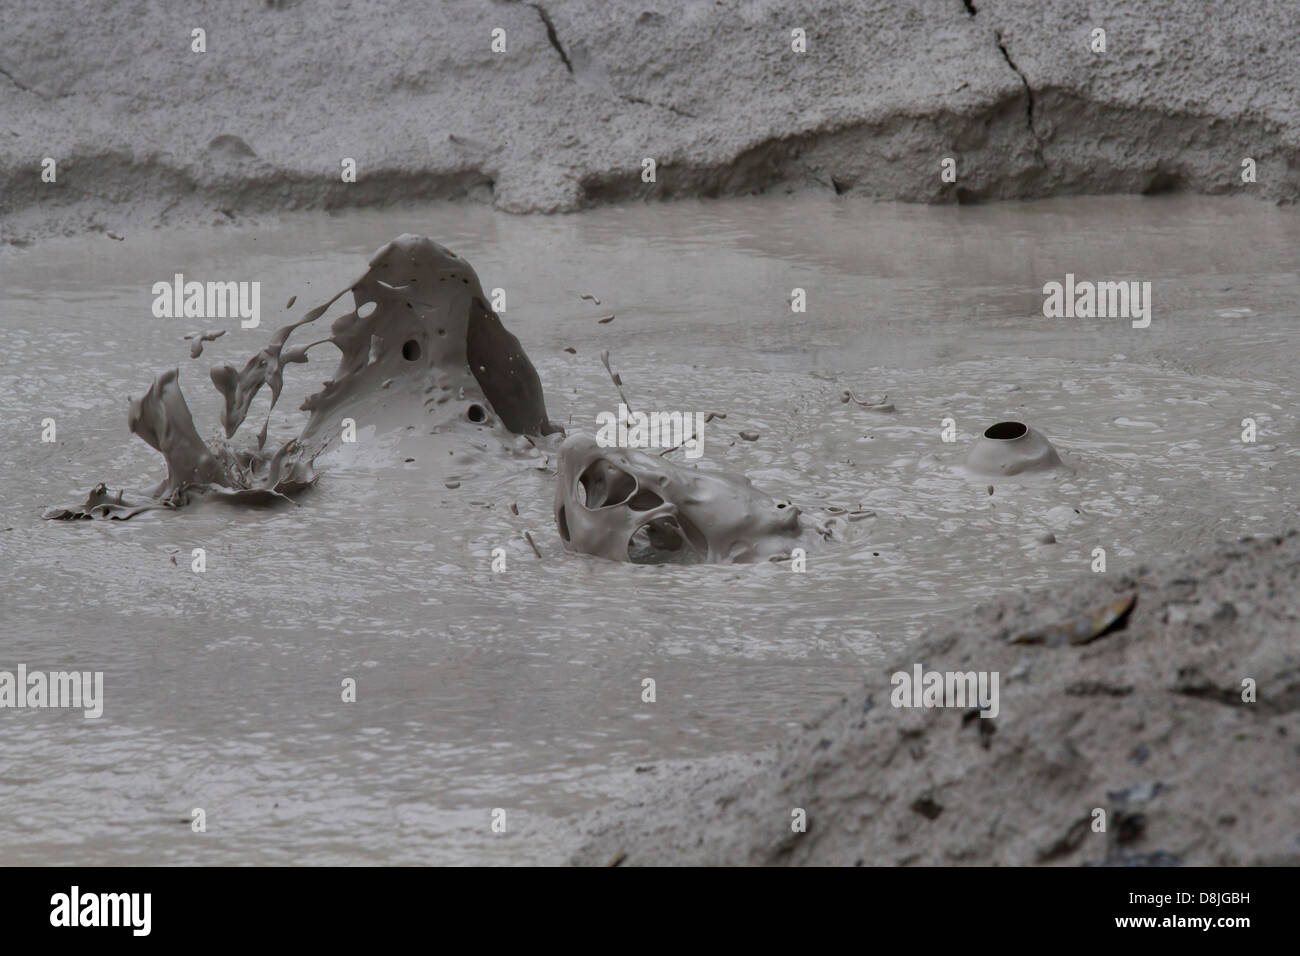 Mud Pots, Pilas de barro, Bubble, Rincon de la Vieja National Park, Costa Rica - Stock Image